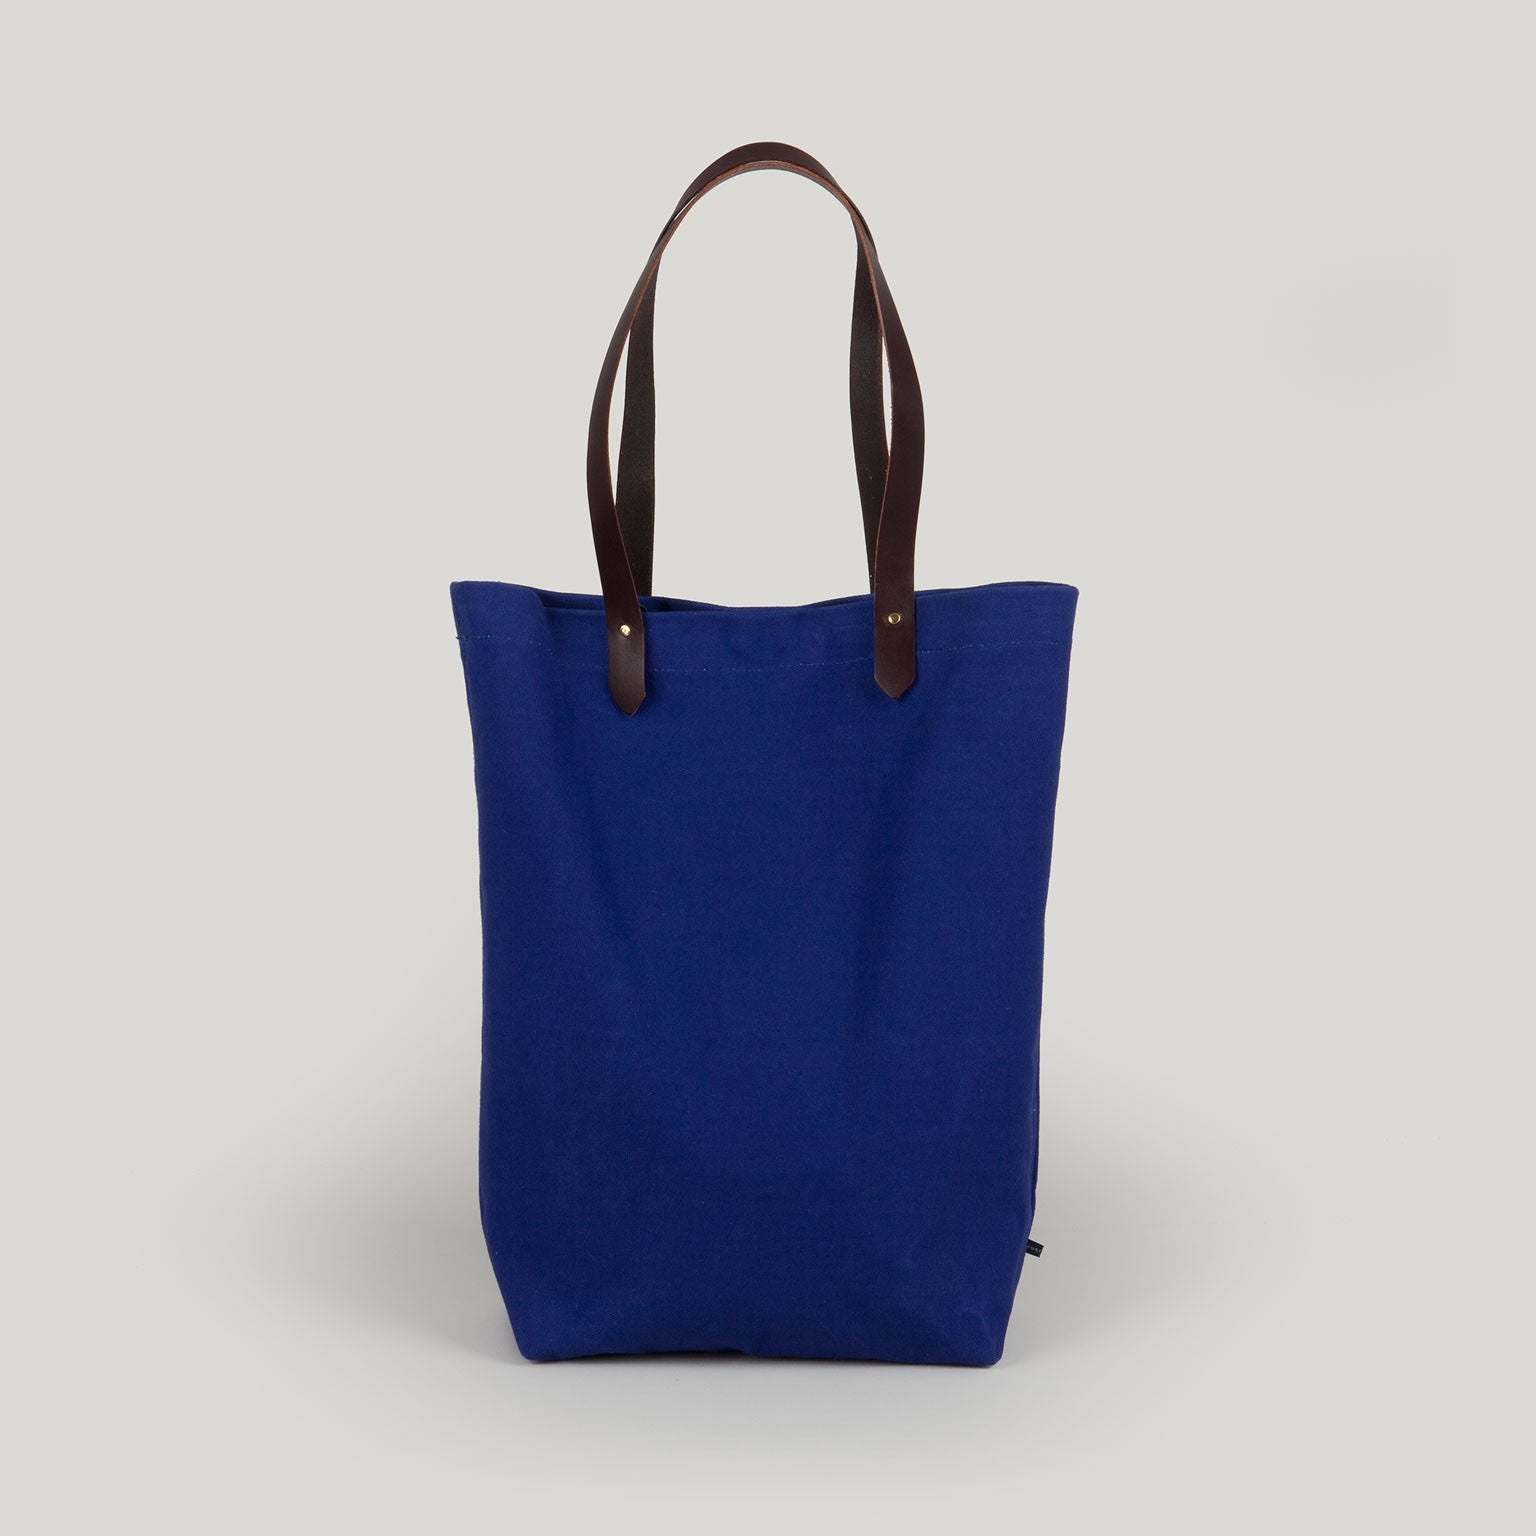 KITTY tote - azure